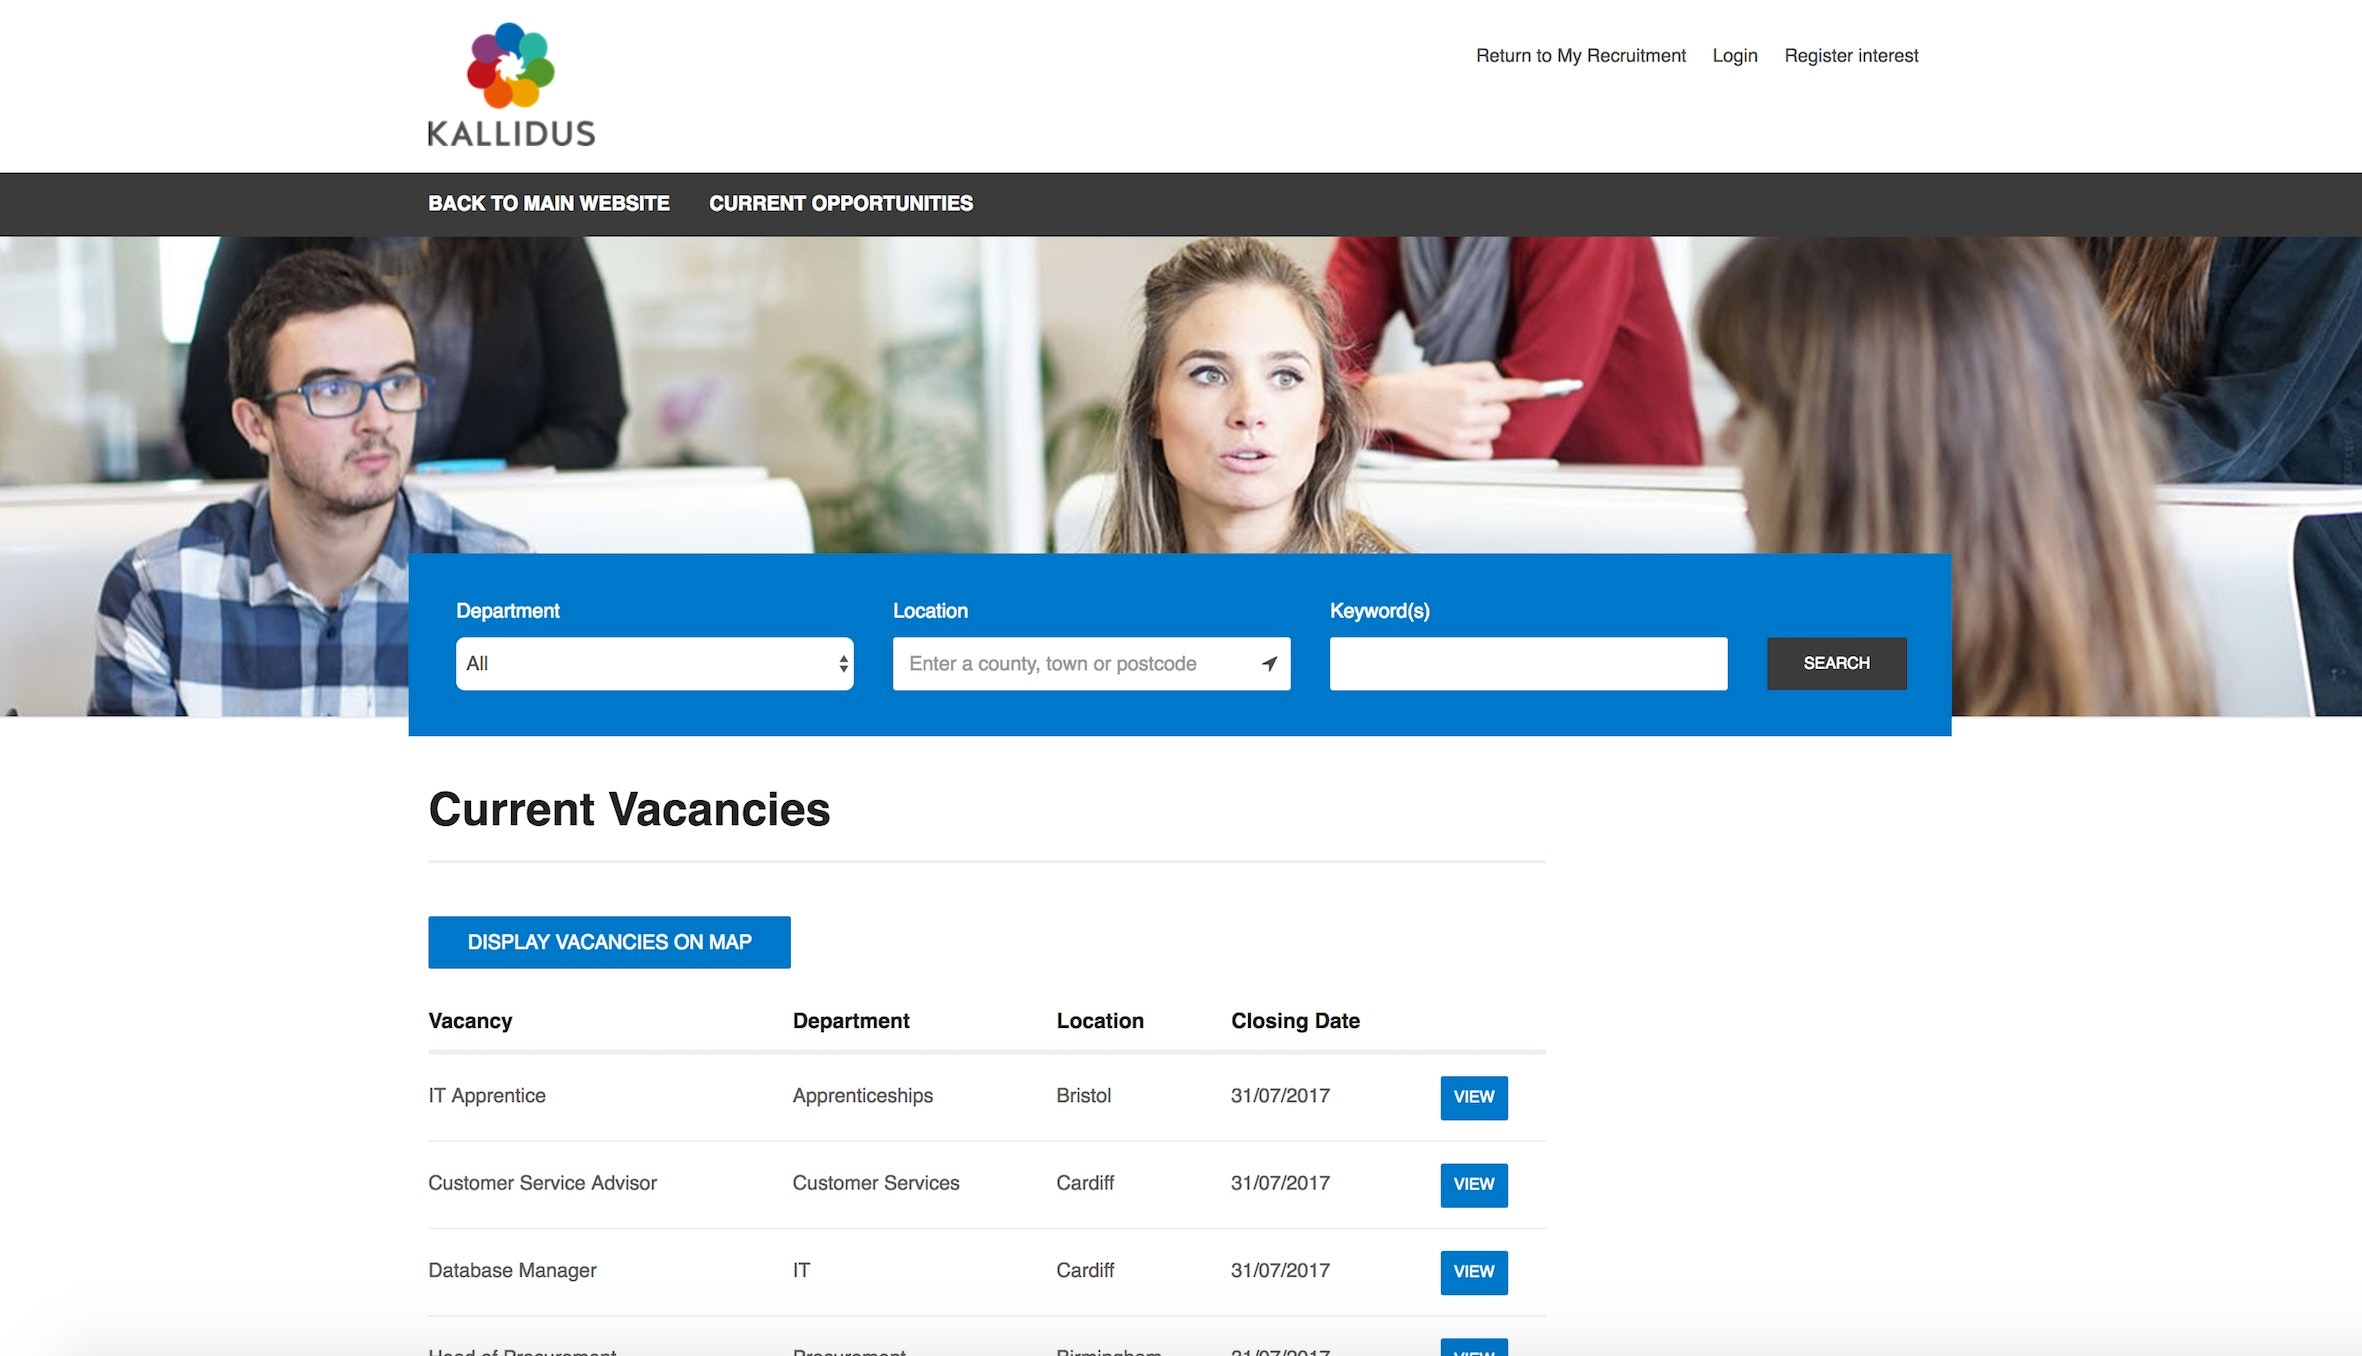 Website careers page